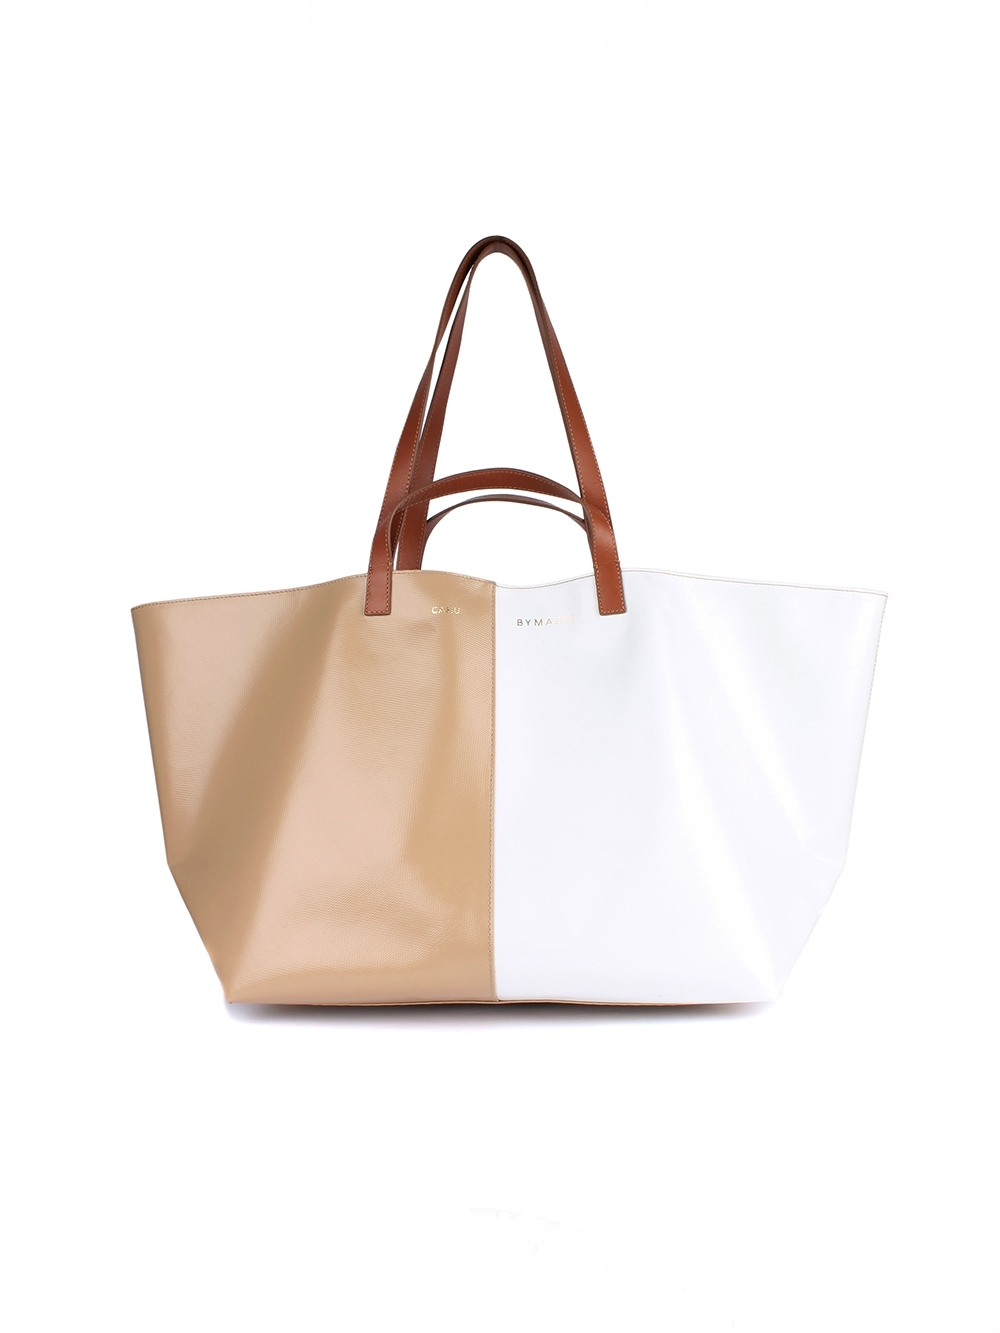 SAC CABAS CAHU X BY MARIE